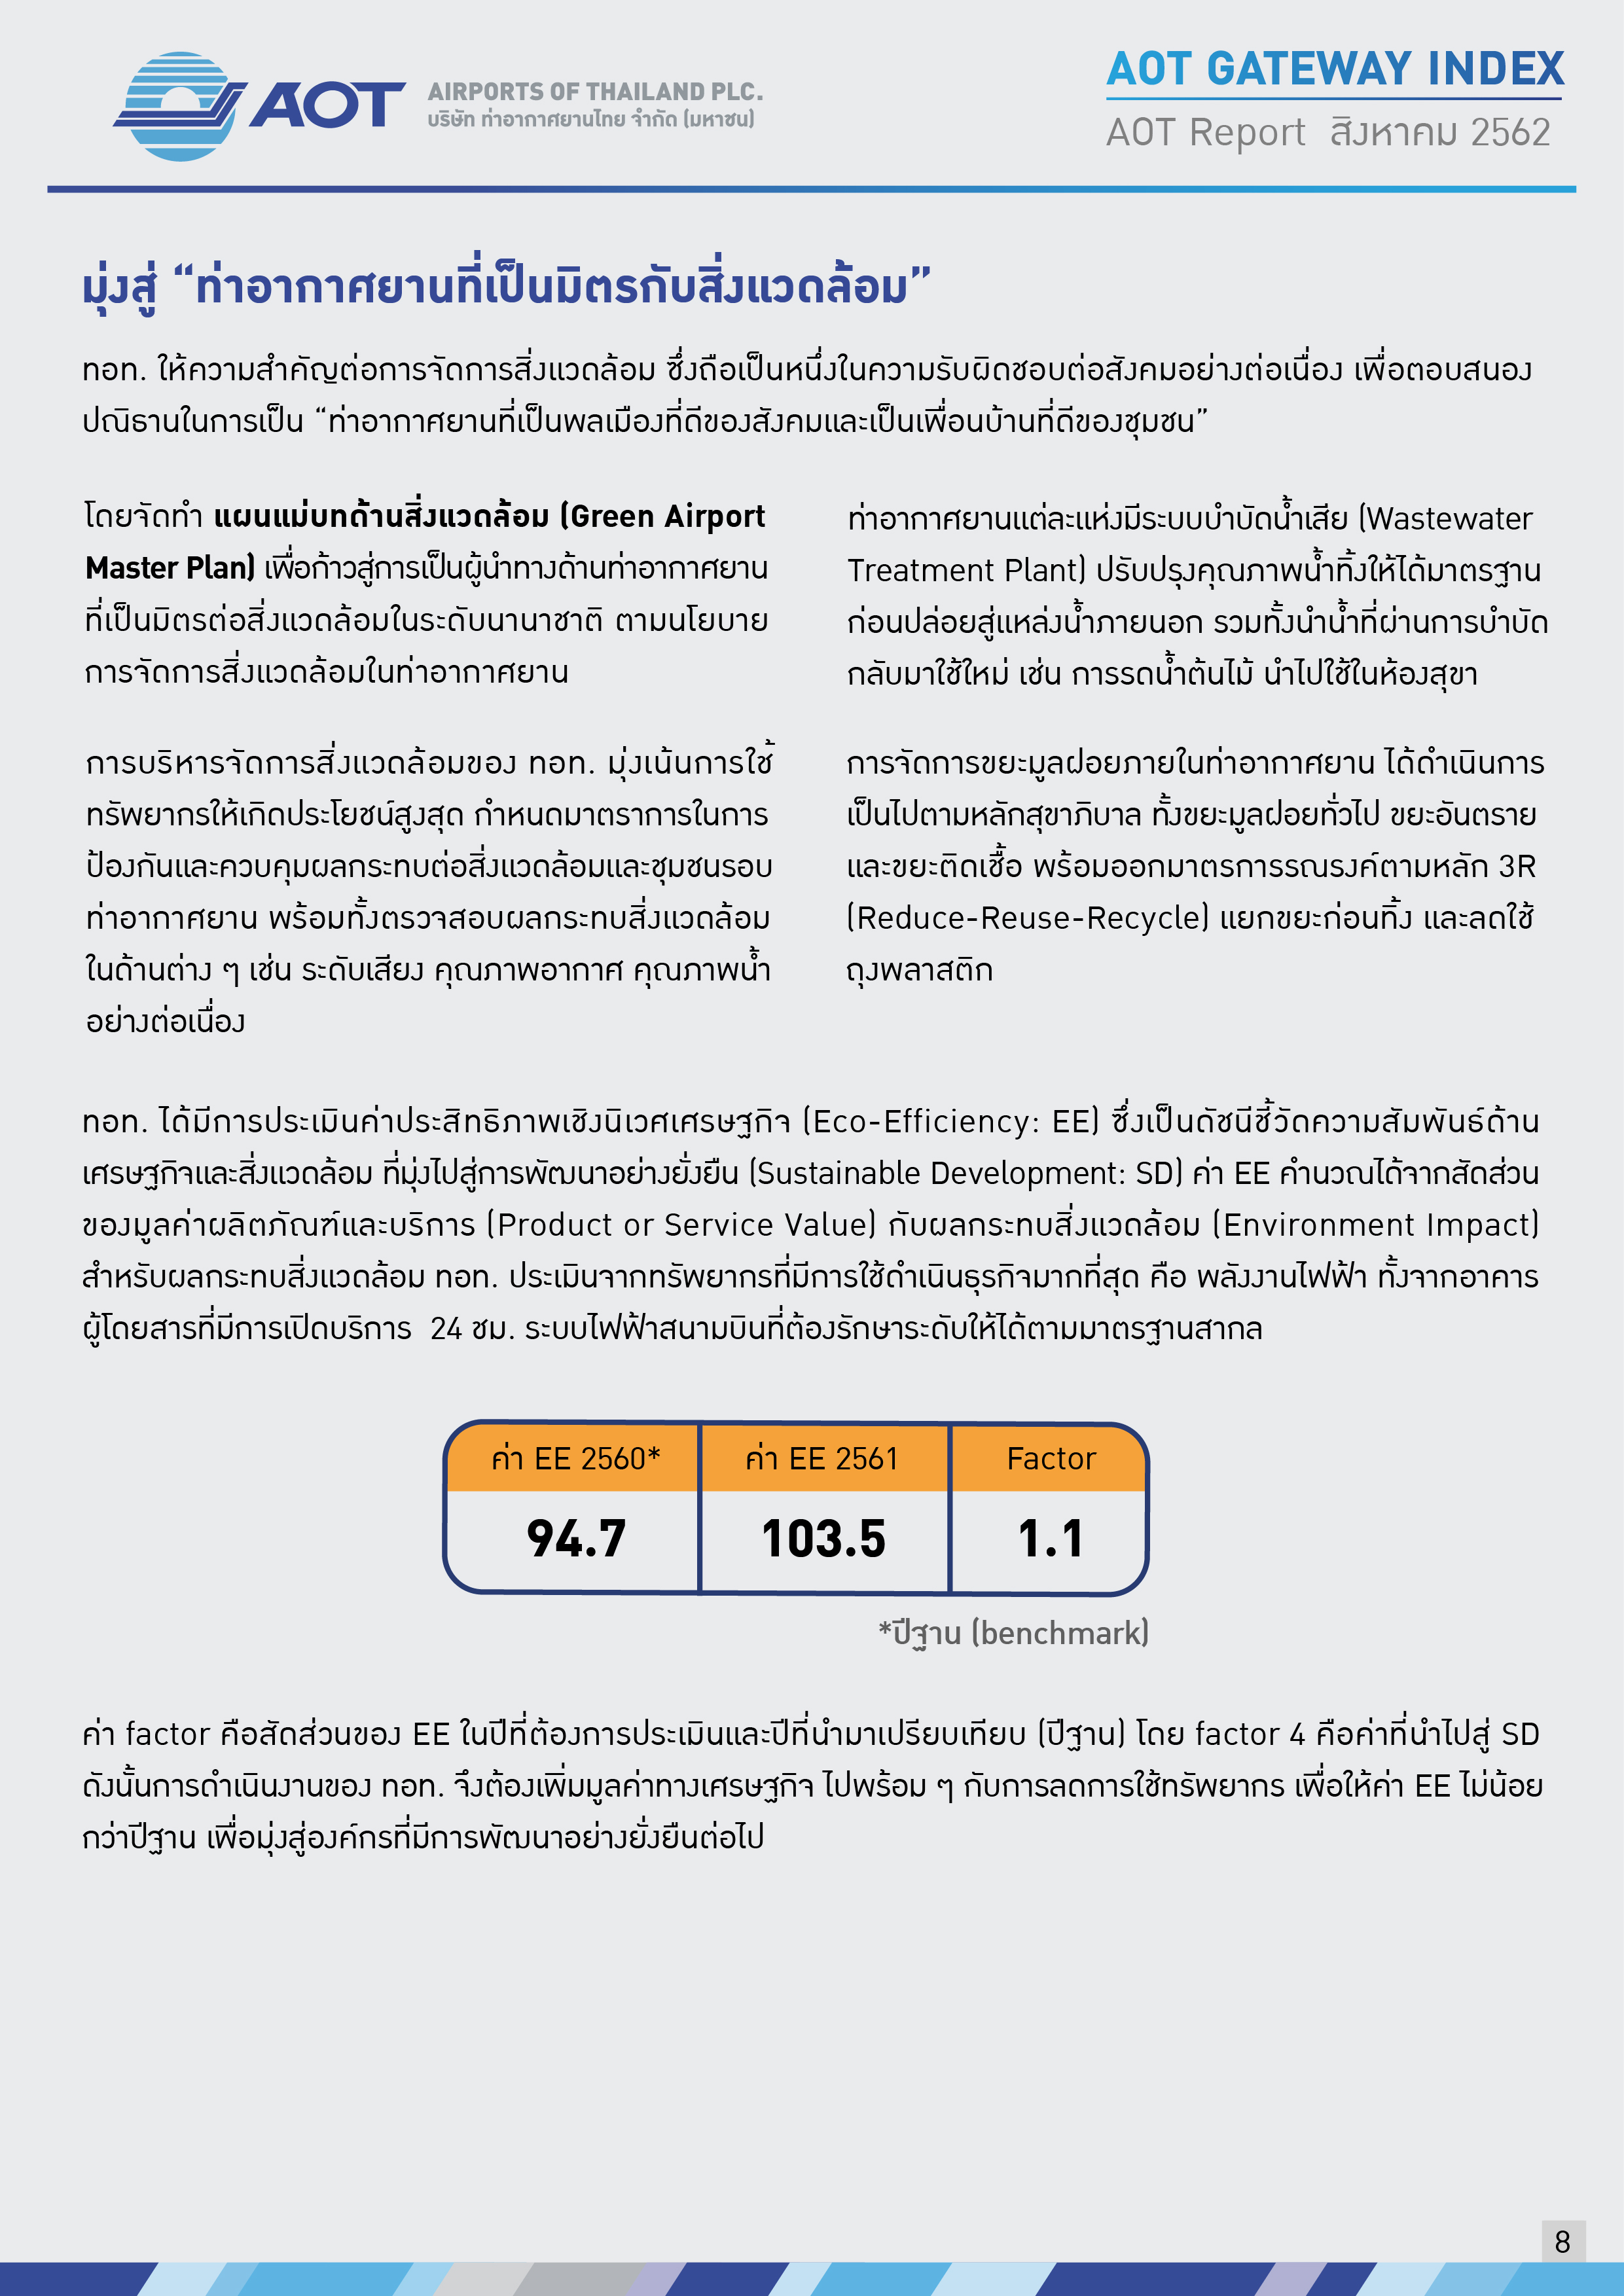 AOTcentent2019_Index 09_AOT เคียงคู่สังคม_V7_20191031_Page08